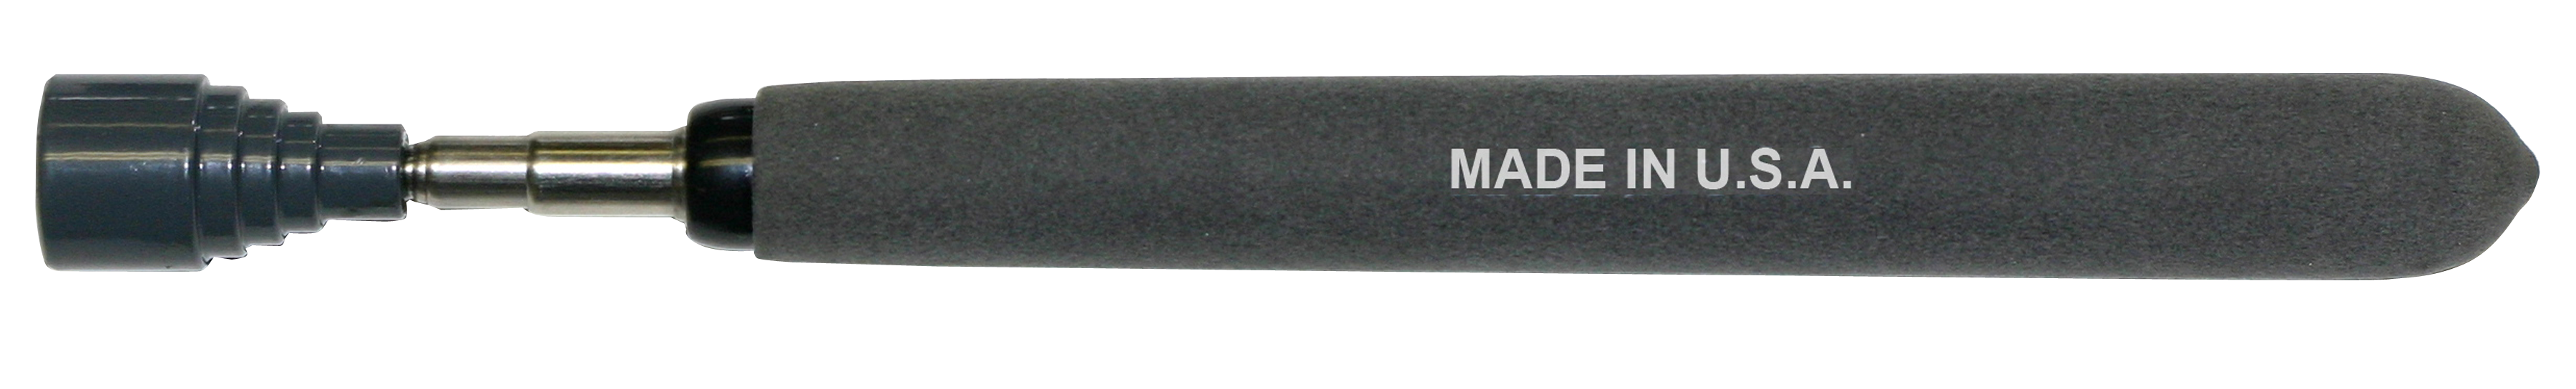 Telescoping Pocket Magnet 14Lb 6-1/2'-32